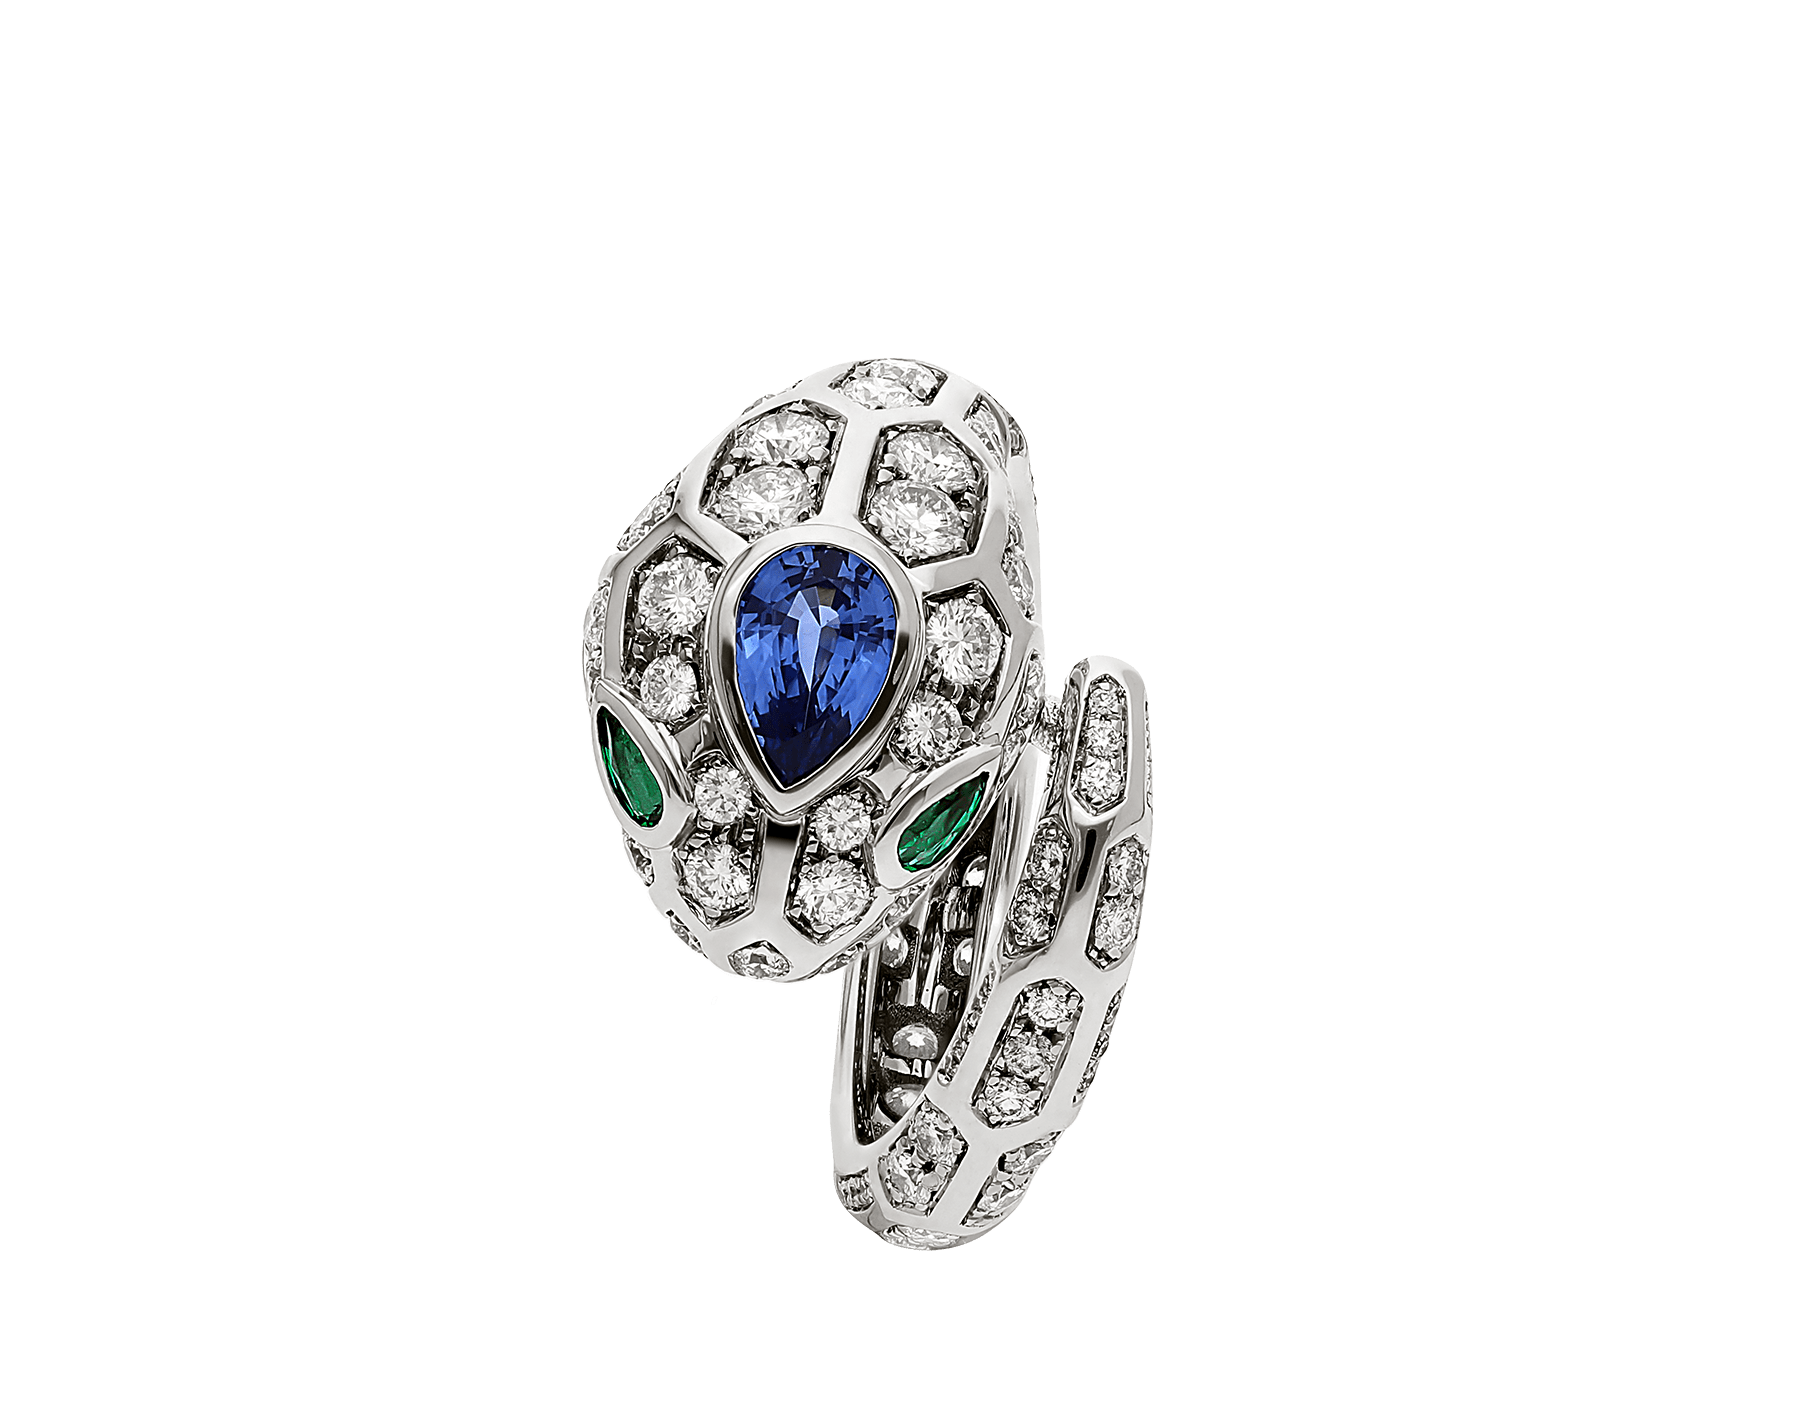 Serpenti 18 kt white gold ring set with a blue sapphire on the head, emerald eyes and pavé diamonds AN858337 image 2